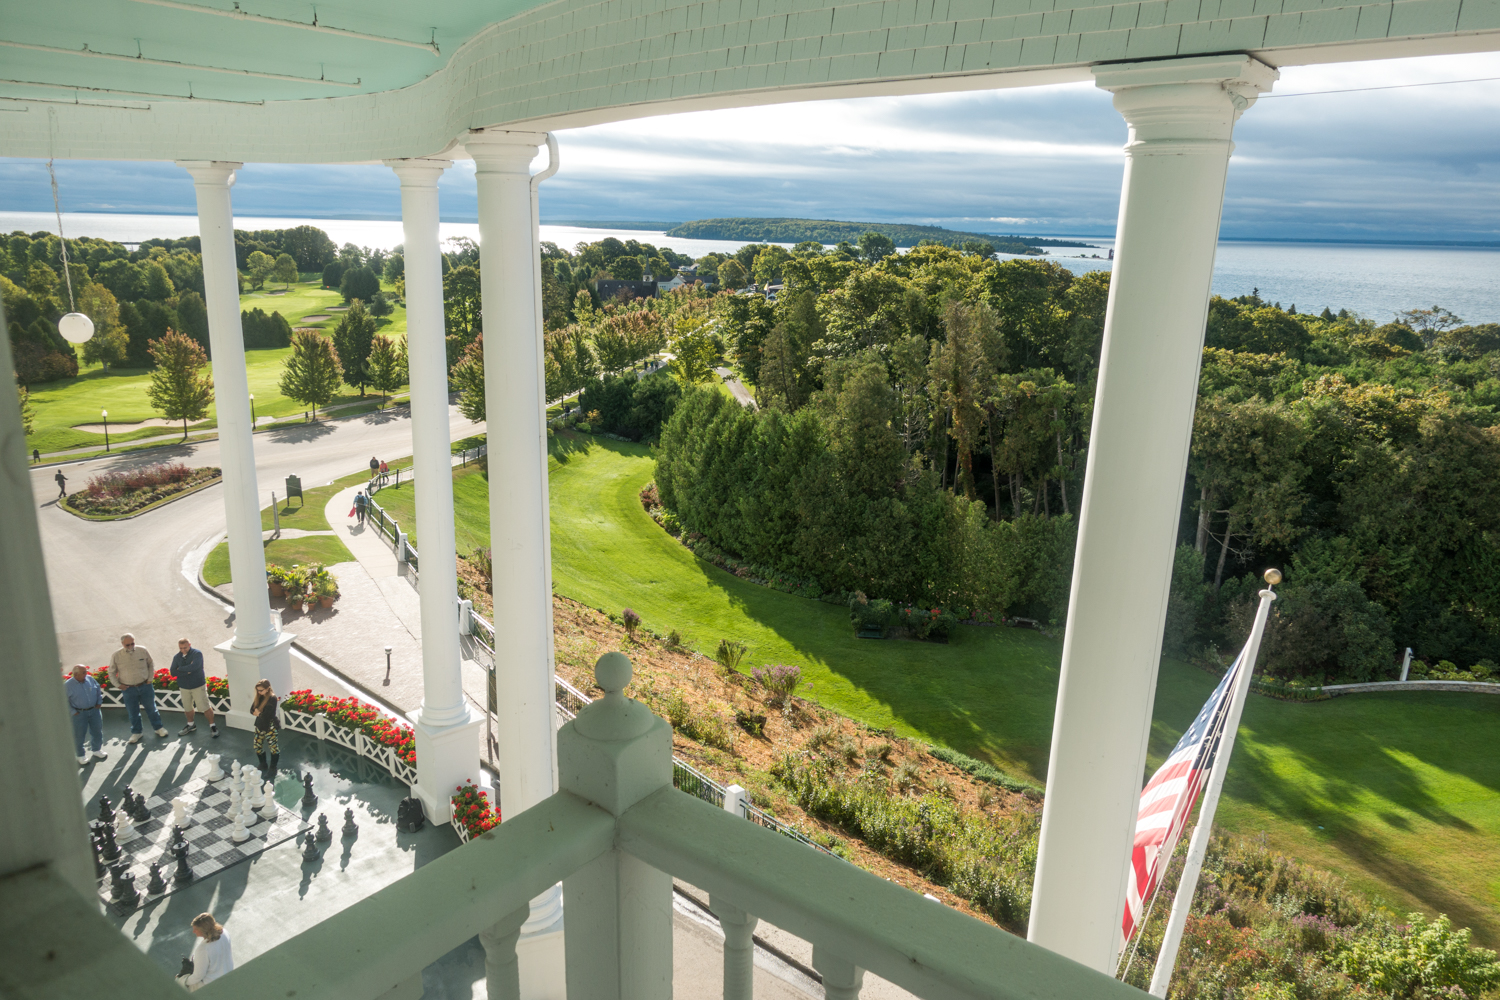 View for the Grand Hotel on Mackinac Island